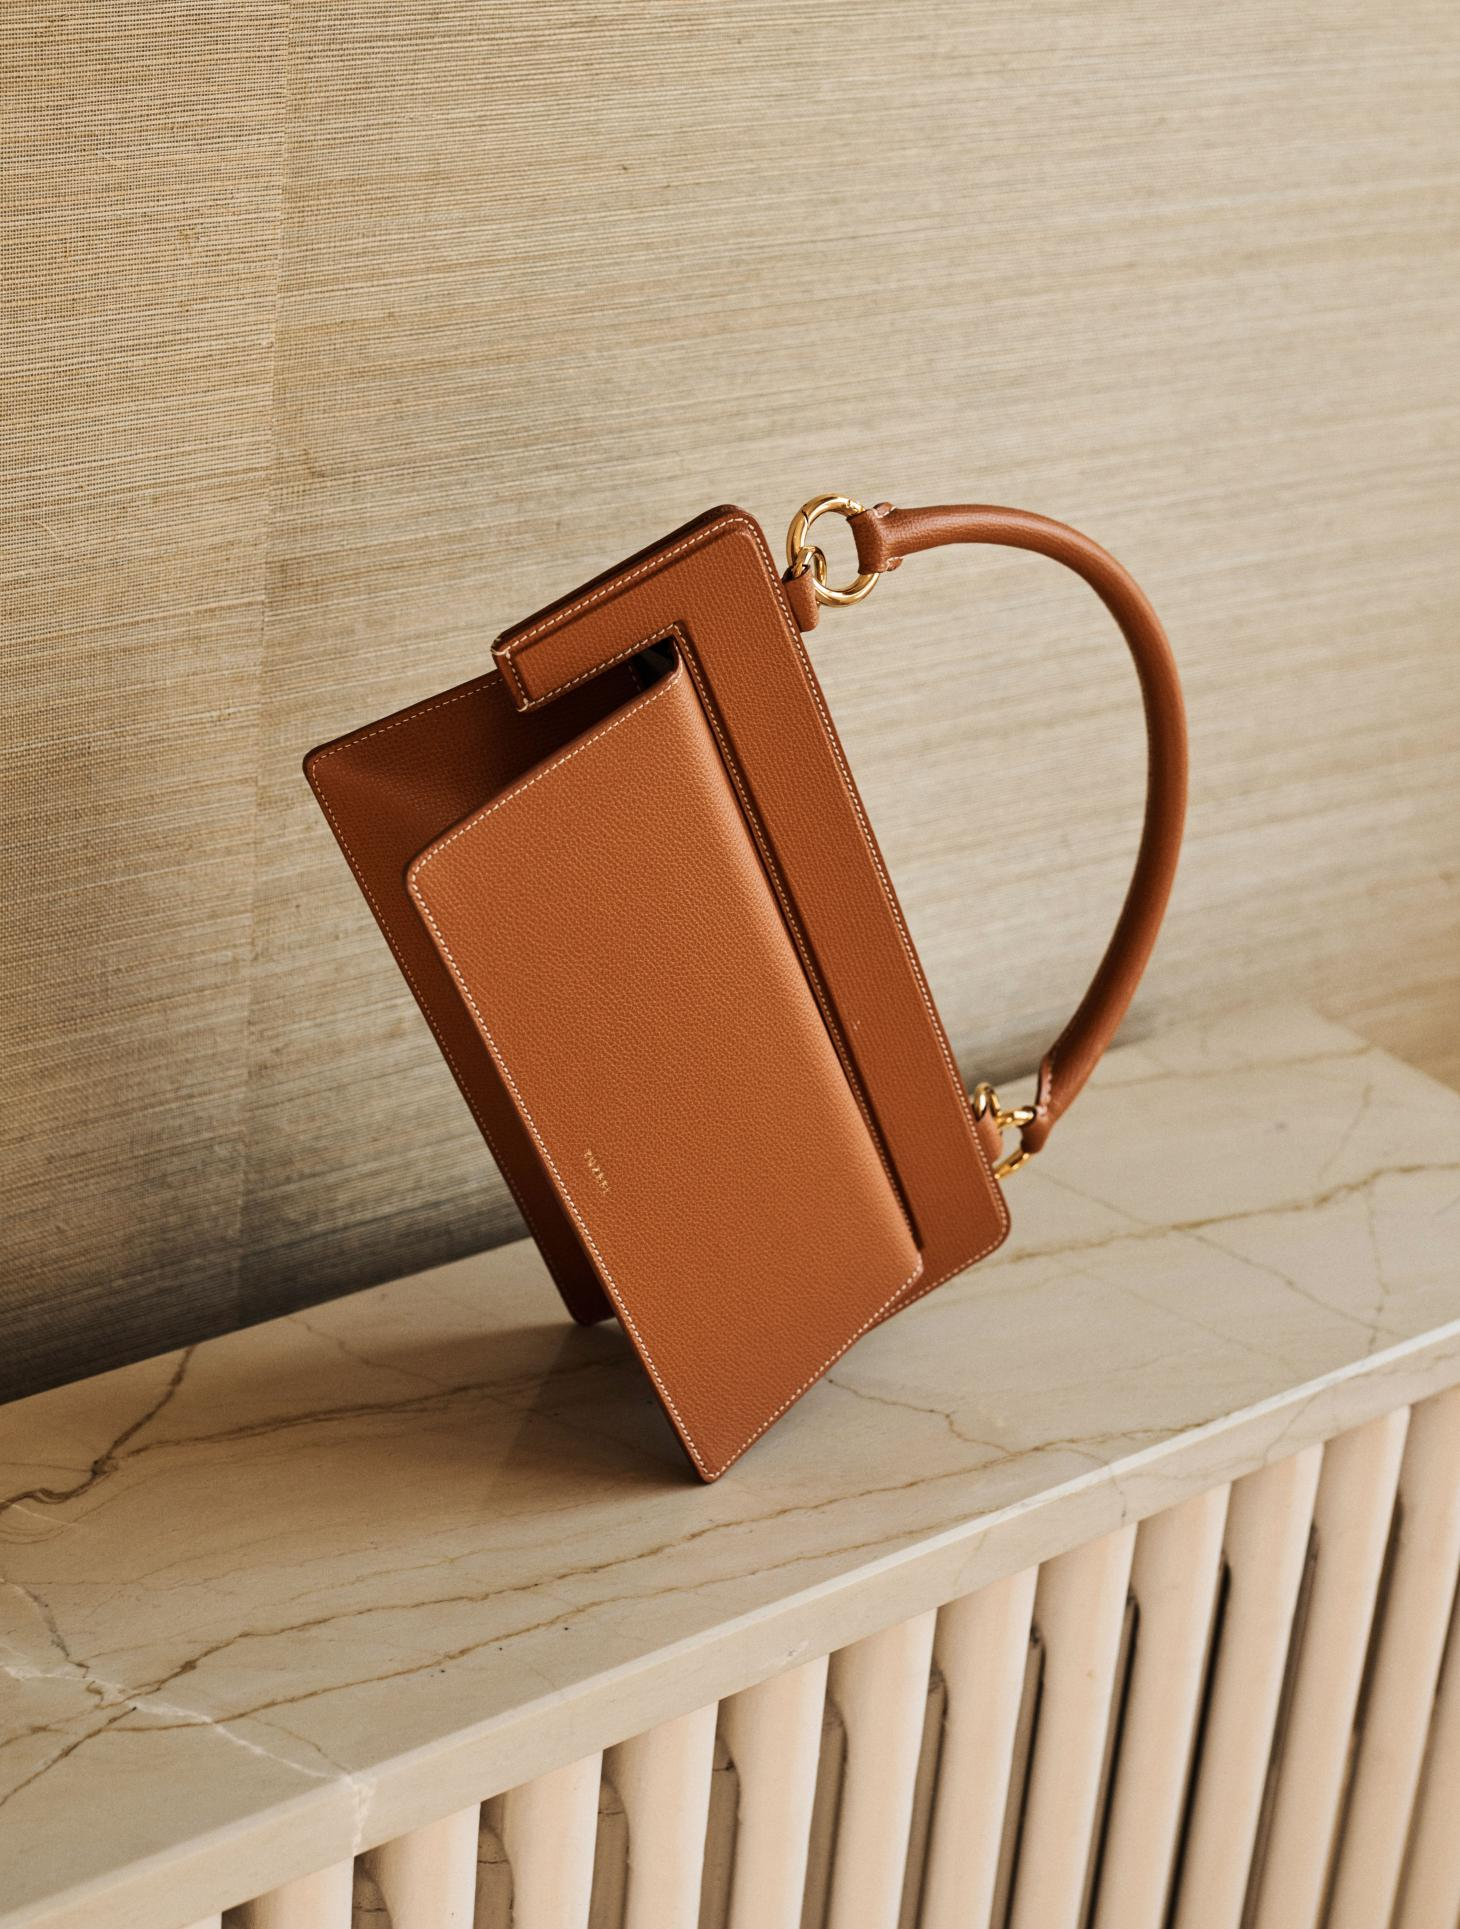 Tan leather bag stands on its side